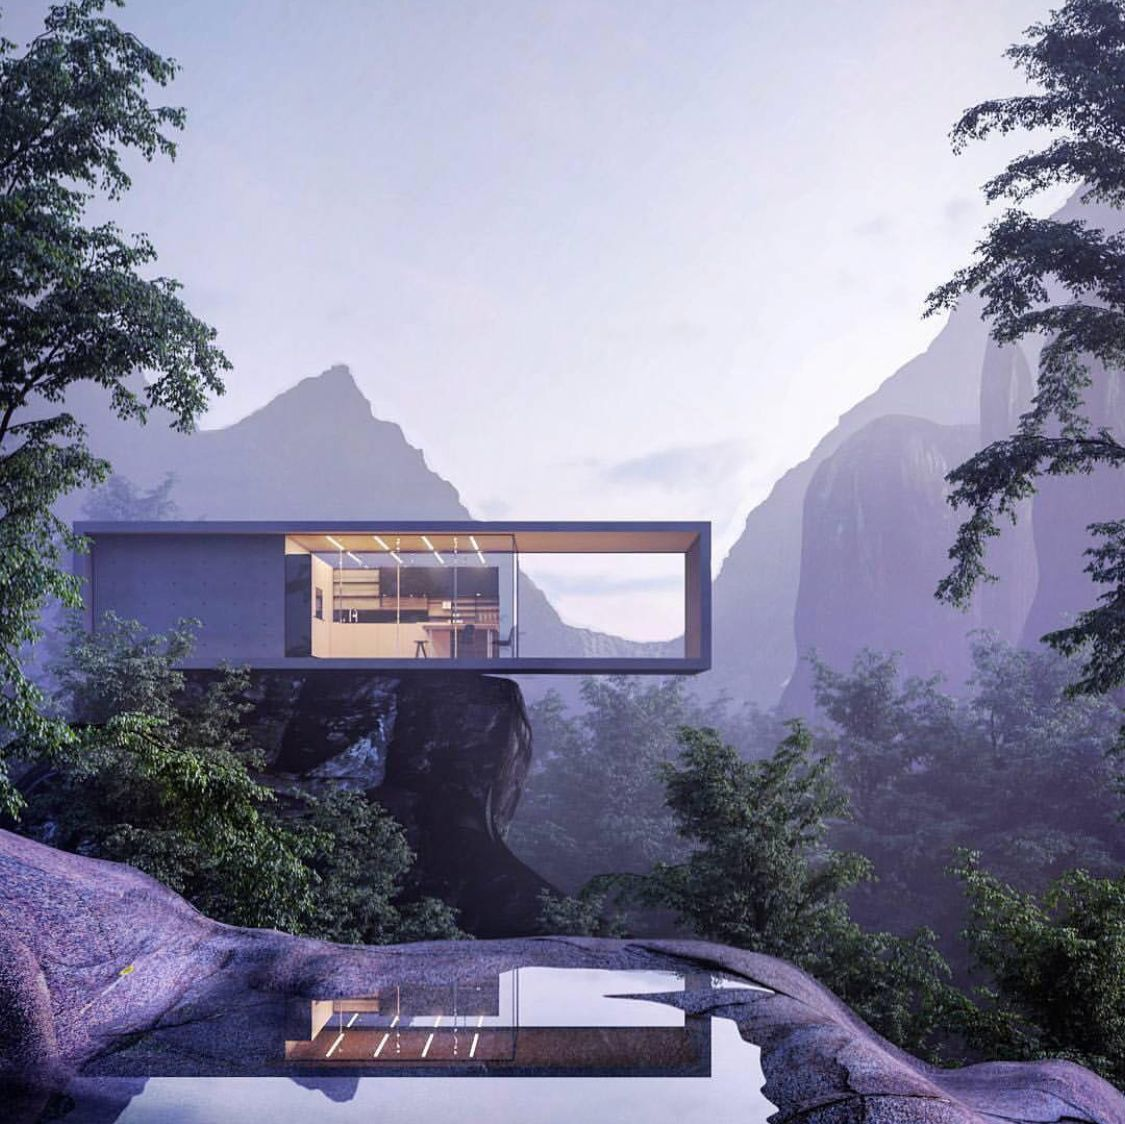 Pin by Max Bulwa on Dream Houses | Pinterest | Architecture ... Organic Architecture Home Designs on prairie style design homes, modular design homes, solar design homes, art deco design homes, frank lloyd wright design homes, green design homes, spain design homes,